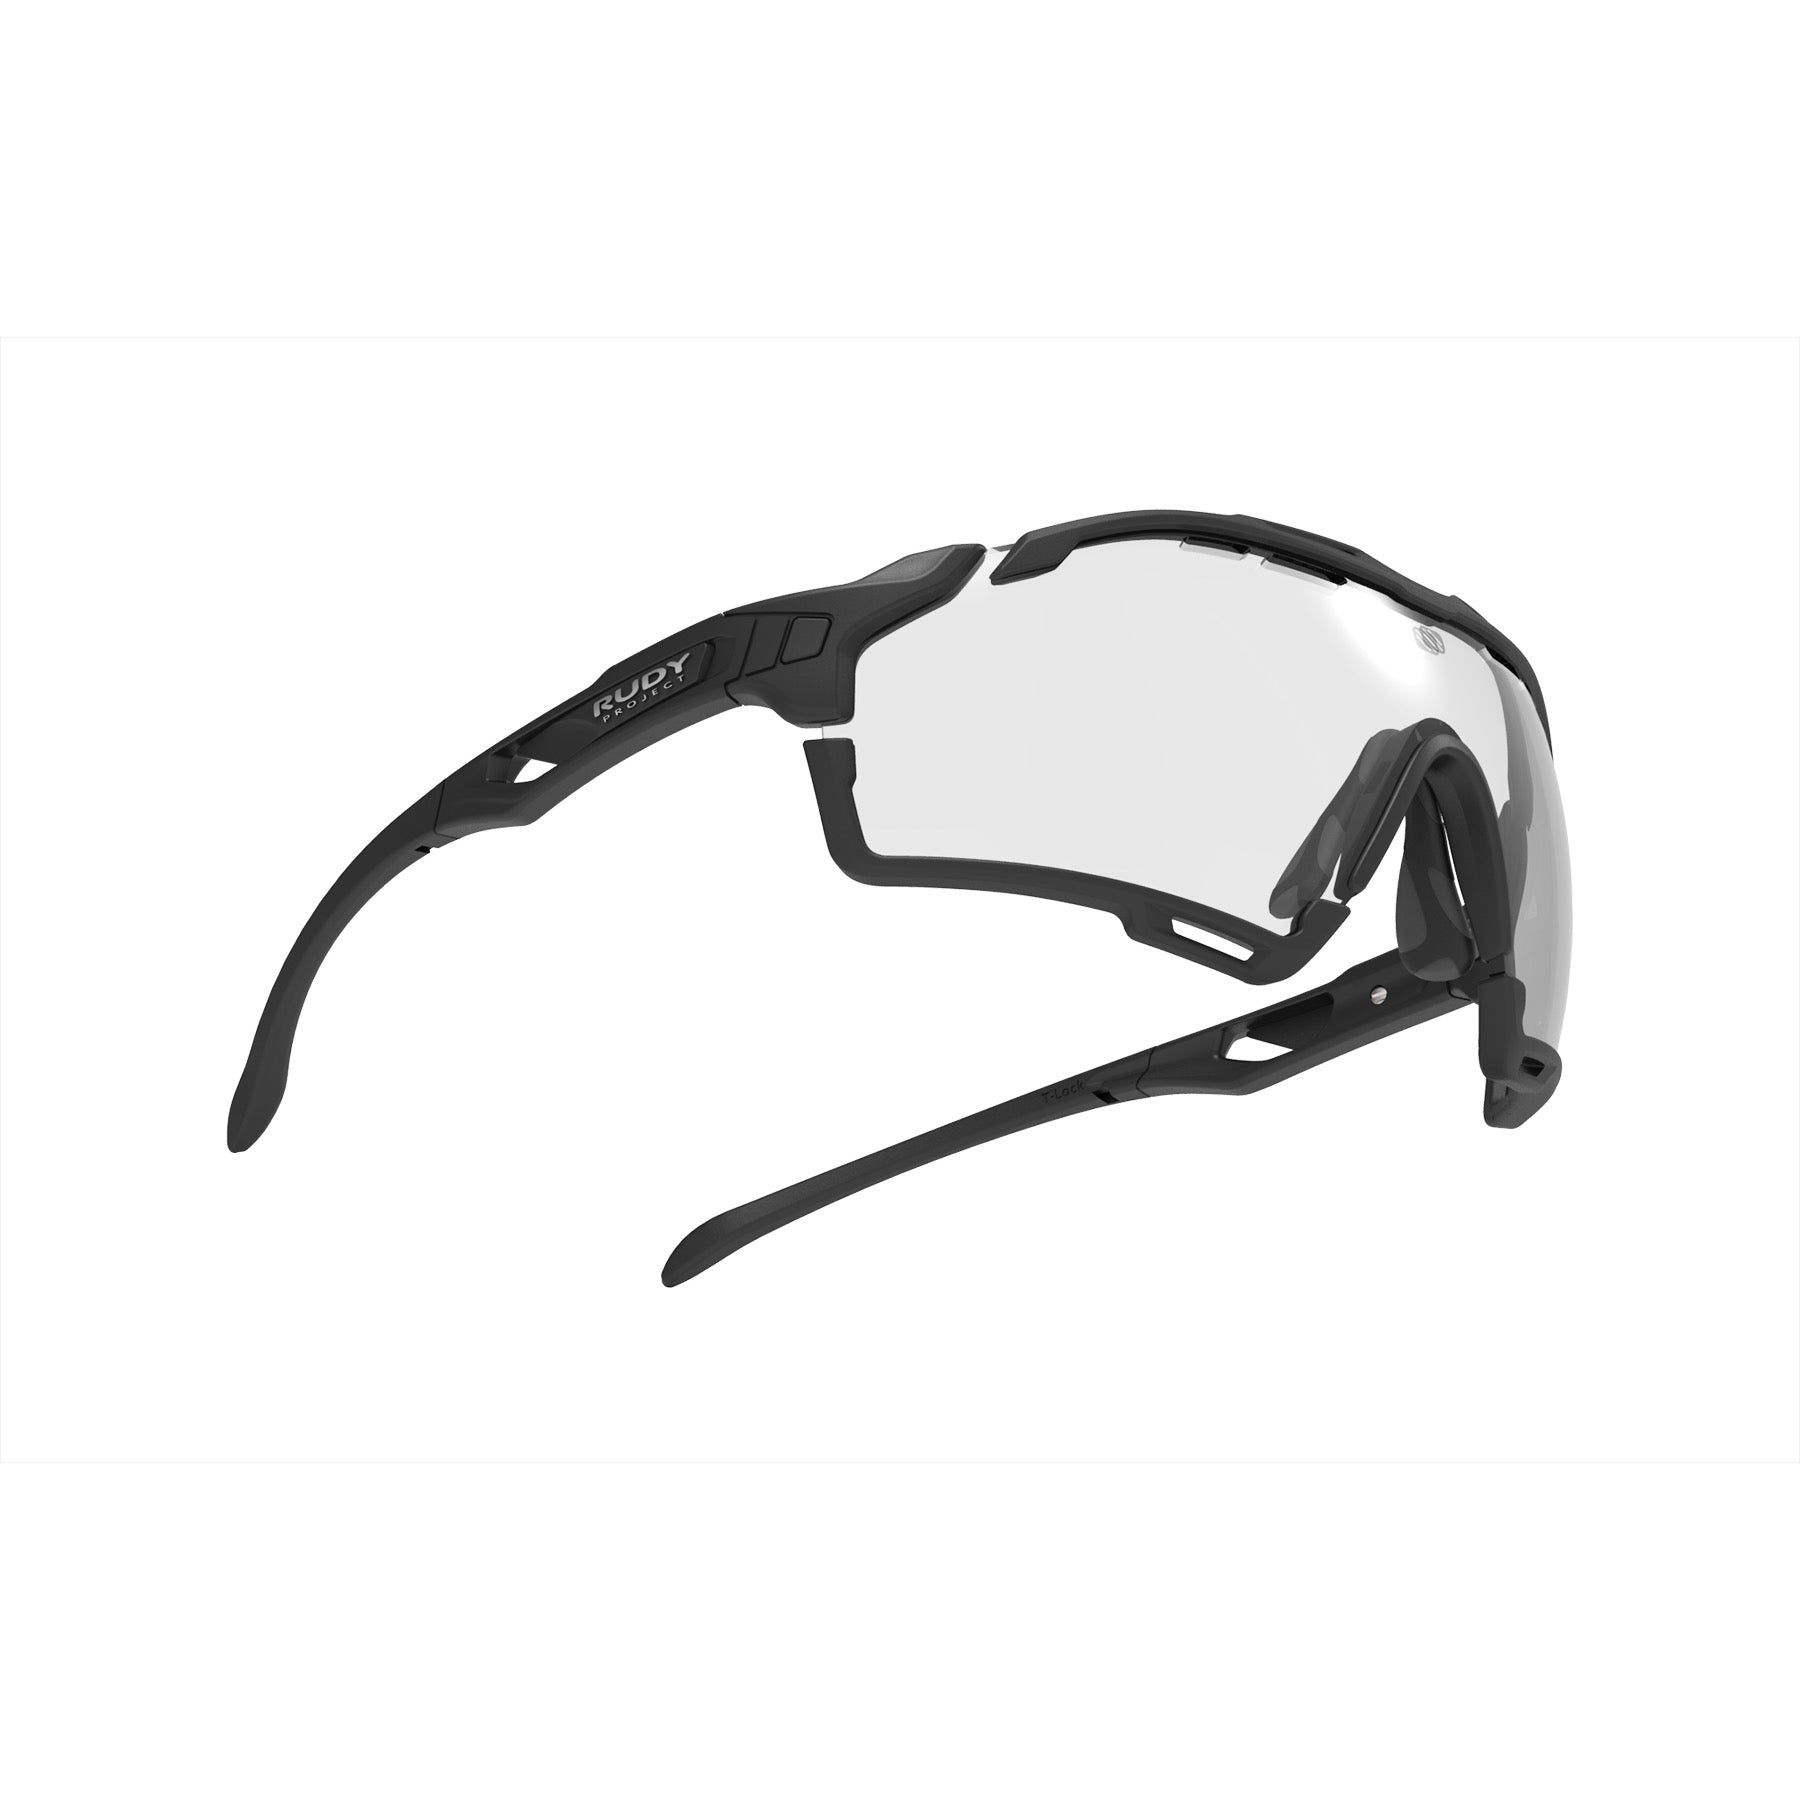 Rudy Project - Cutline - frame color: Matte Black - lens color: ImpactX-2 Photochromic Clear to Black - Bumper Color: Black - photo angle: Bottom Front Angle Variant Hover Image